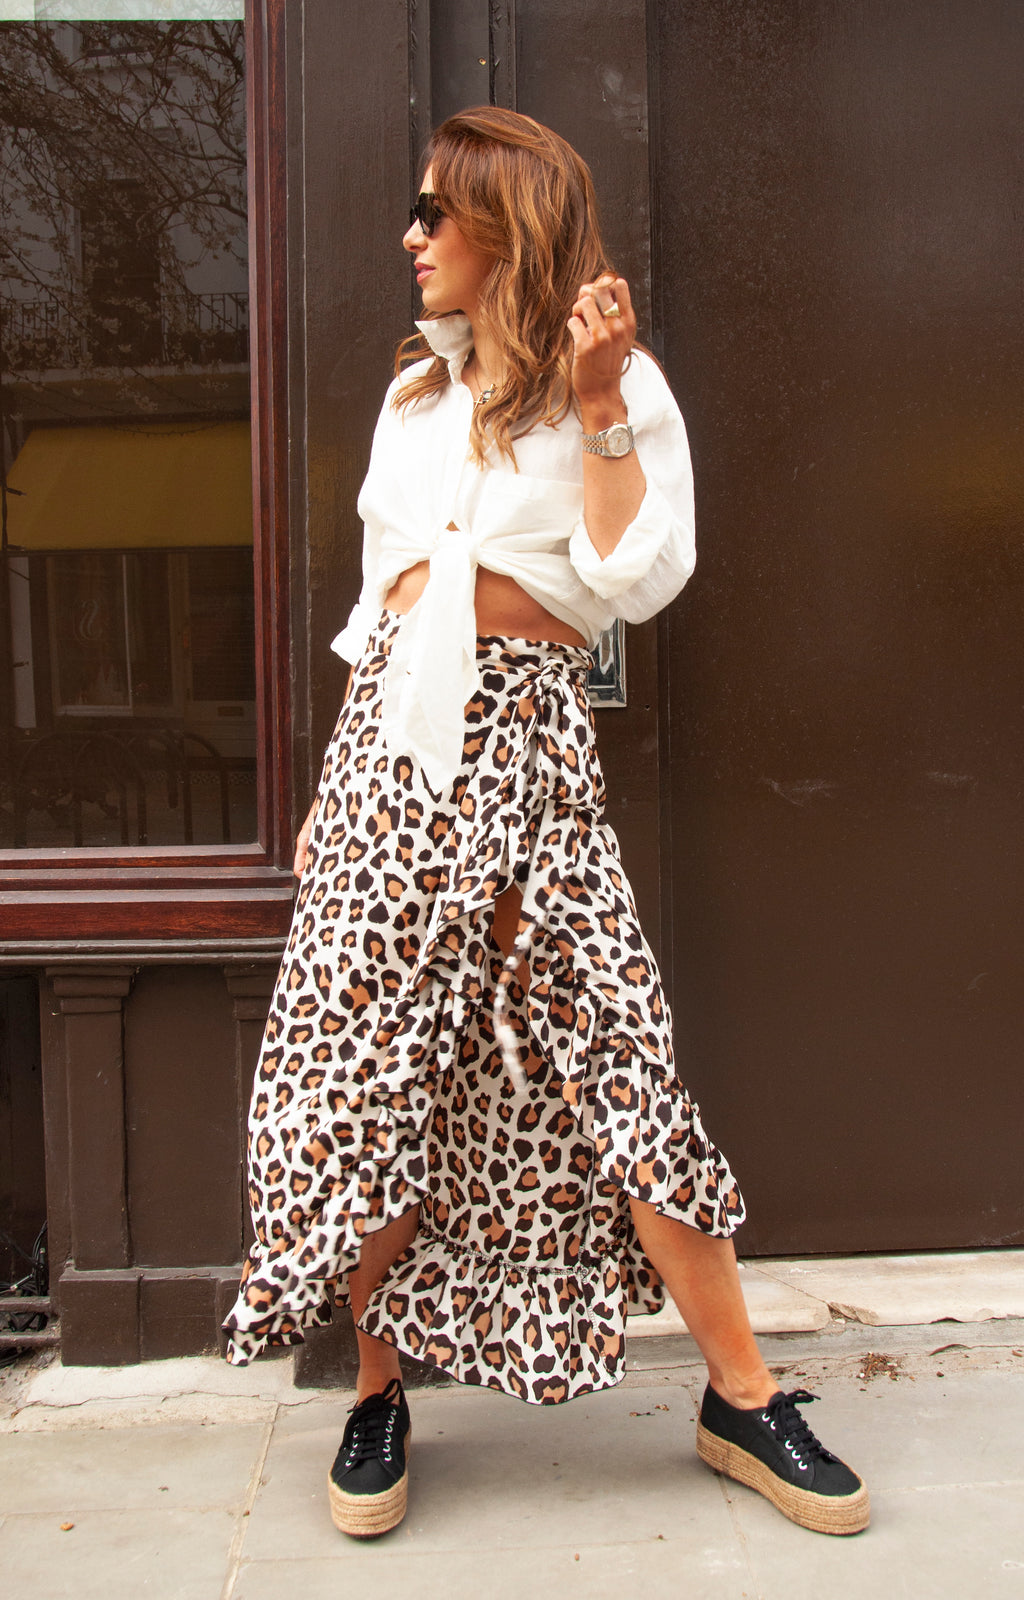 SCARLETT Skirt in Beige Cheetah